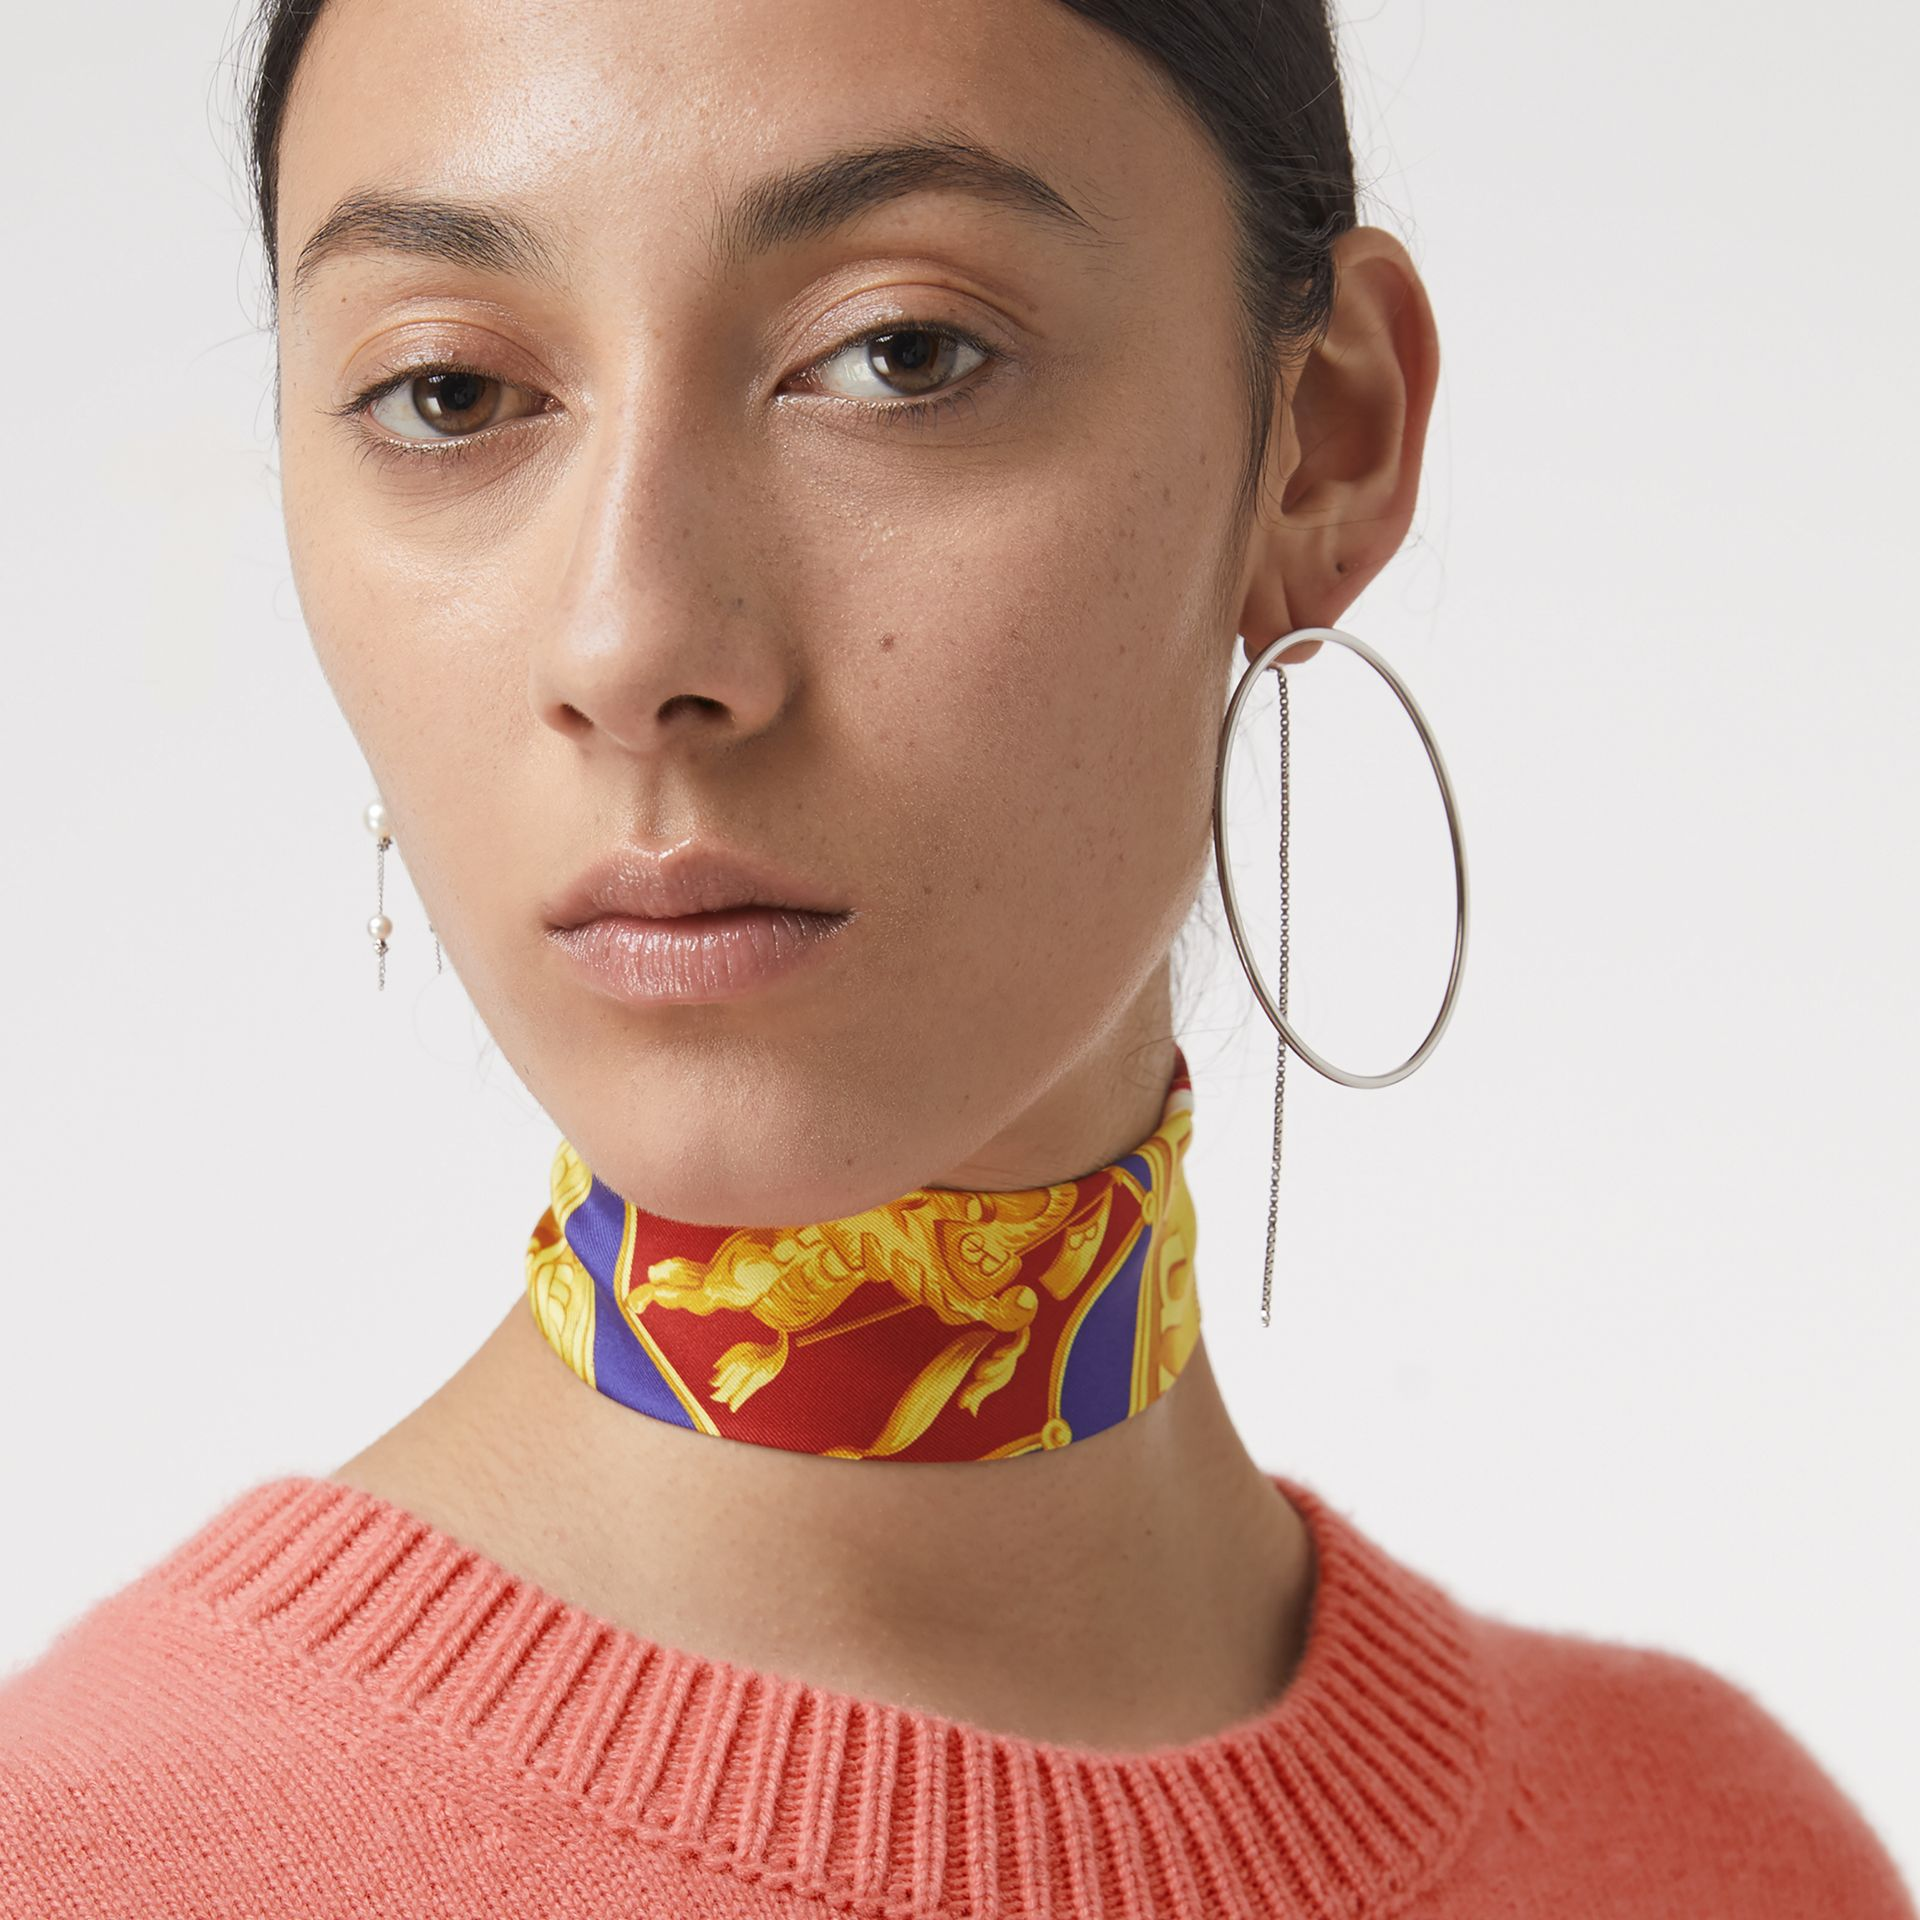 Archive Scarf Print Silk Skinny Scarf in Multicolour - Women | Burberry - gallery image 3